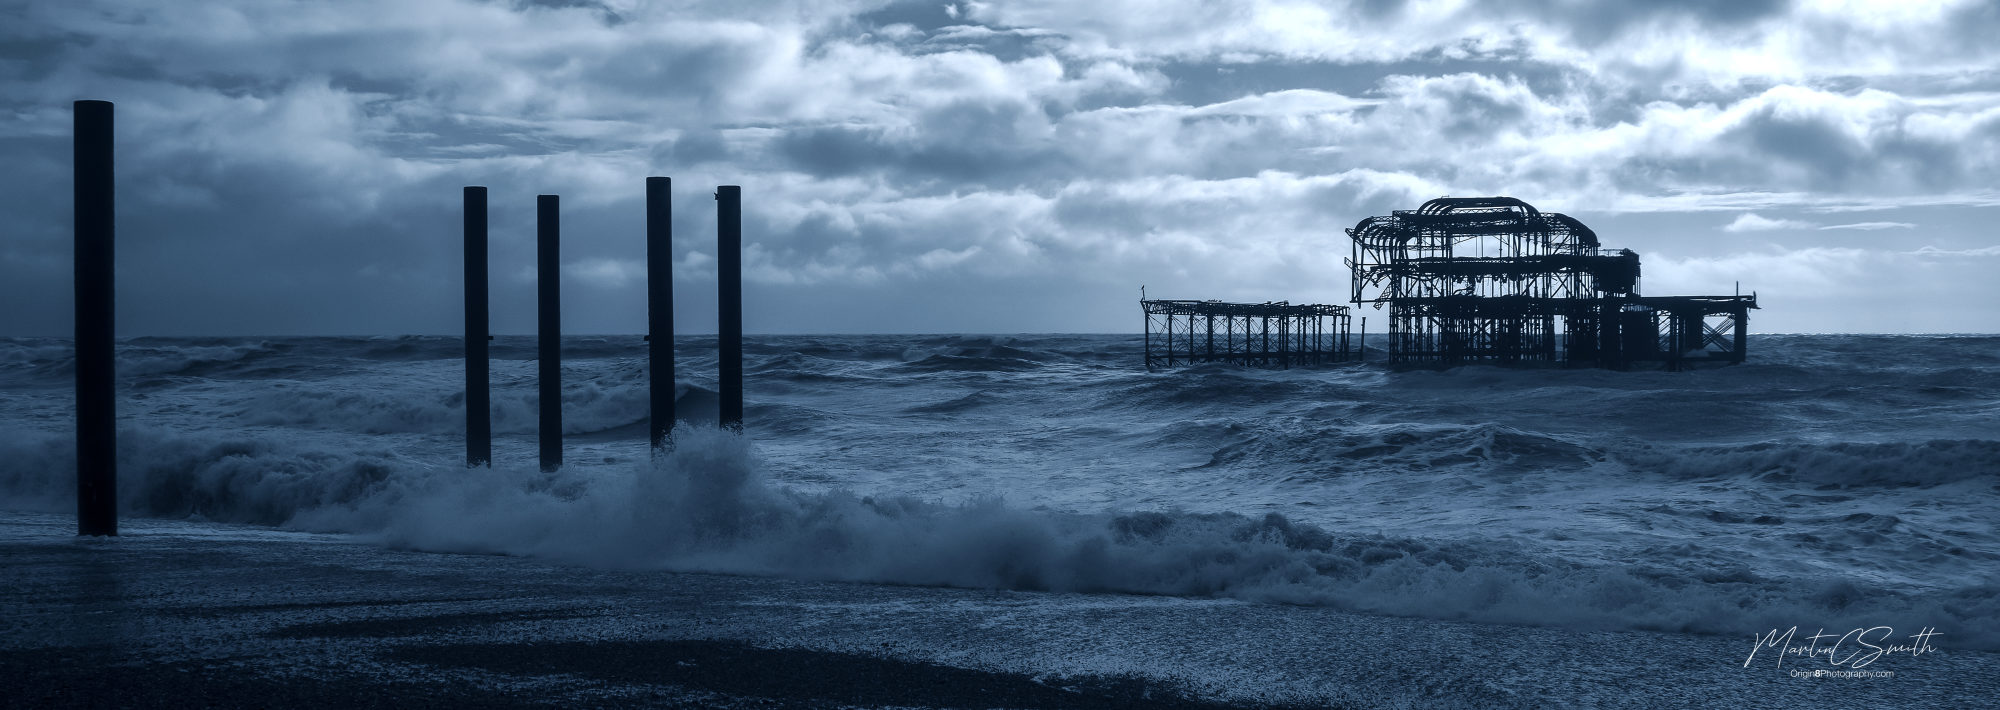 Brighton Pier in dramatic seascape